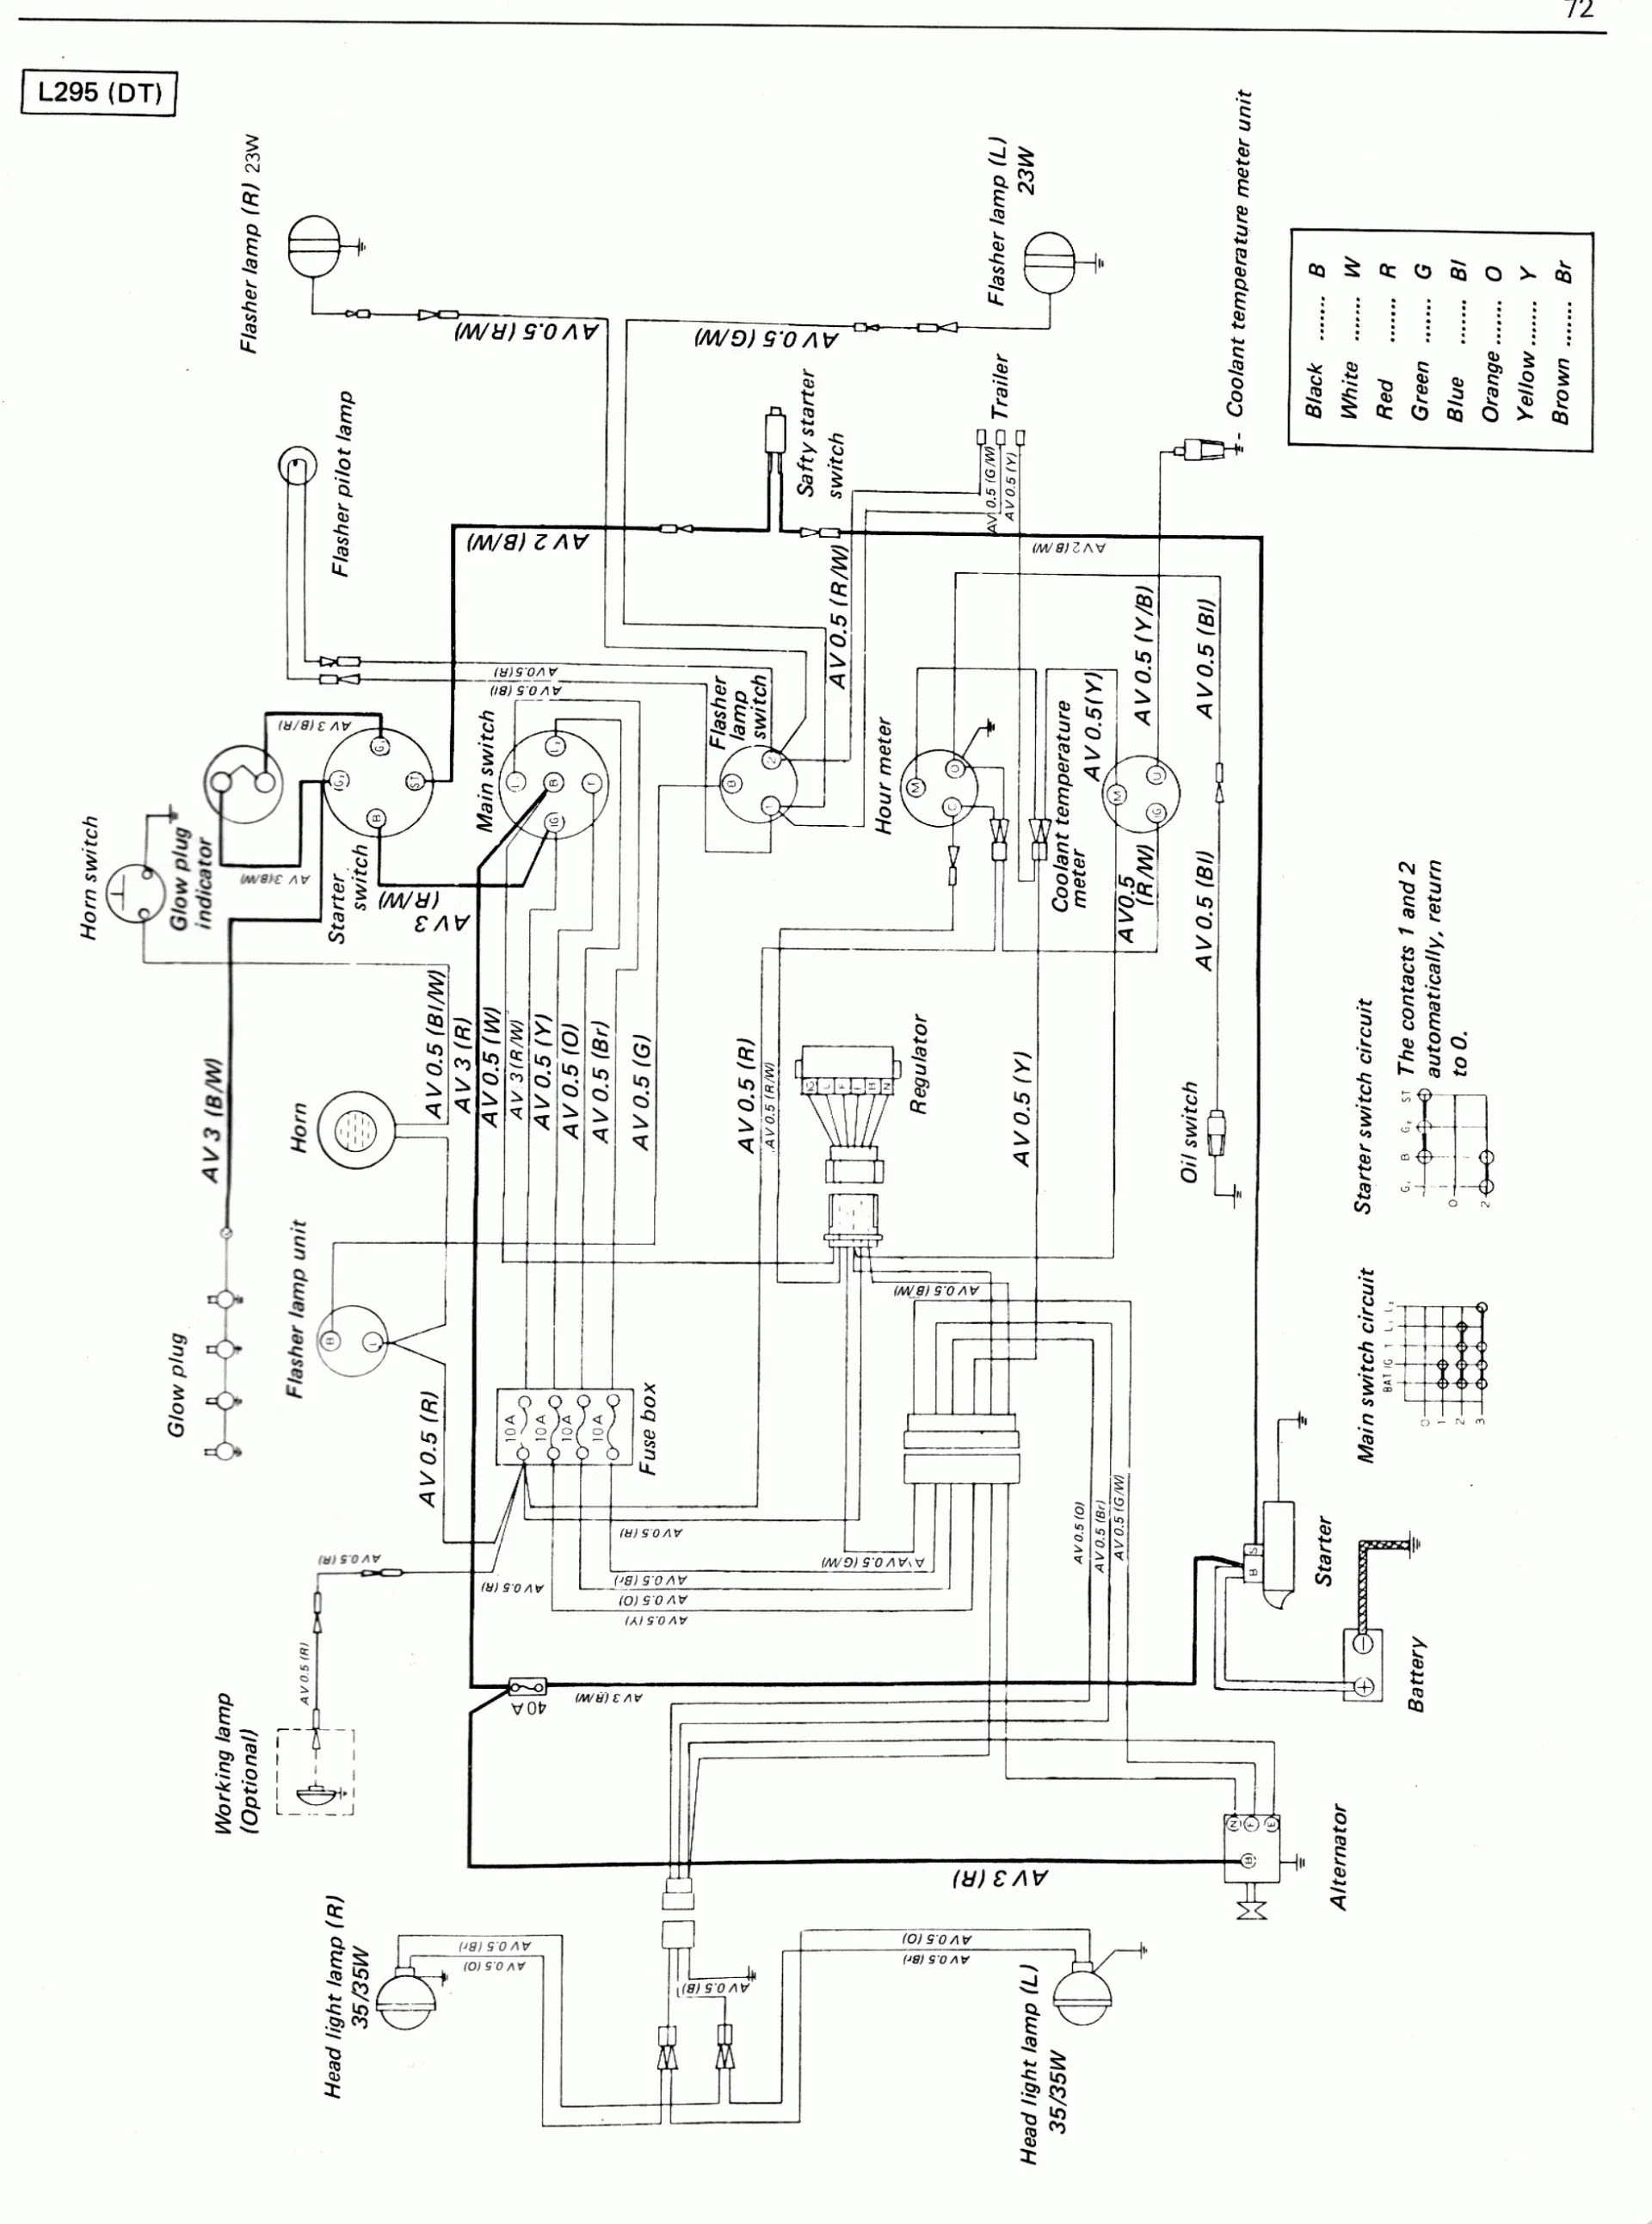 hight resolution of ford 6 0sel glow plug wiring diagram wiring diagram database 7 3 idi engine wiring diagram